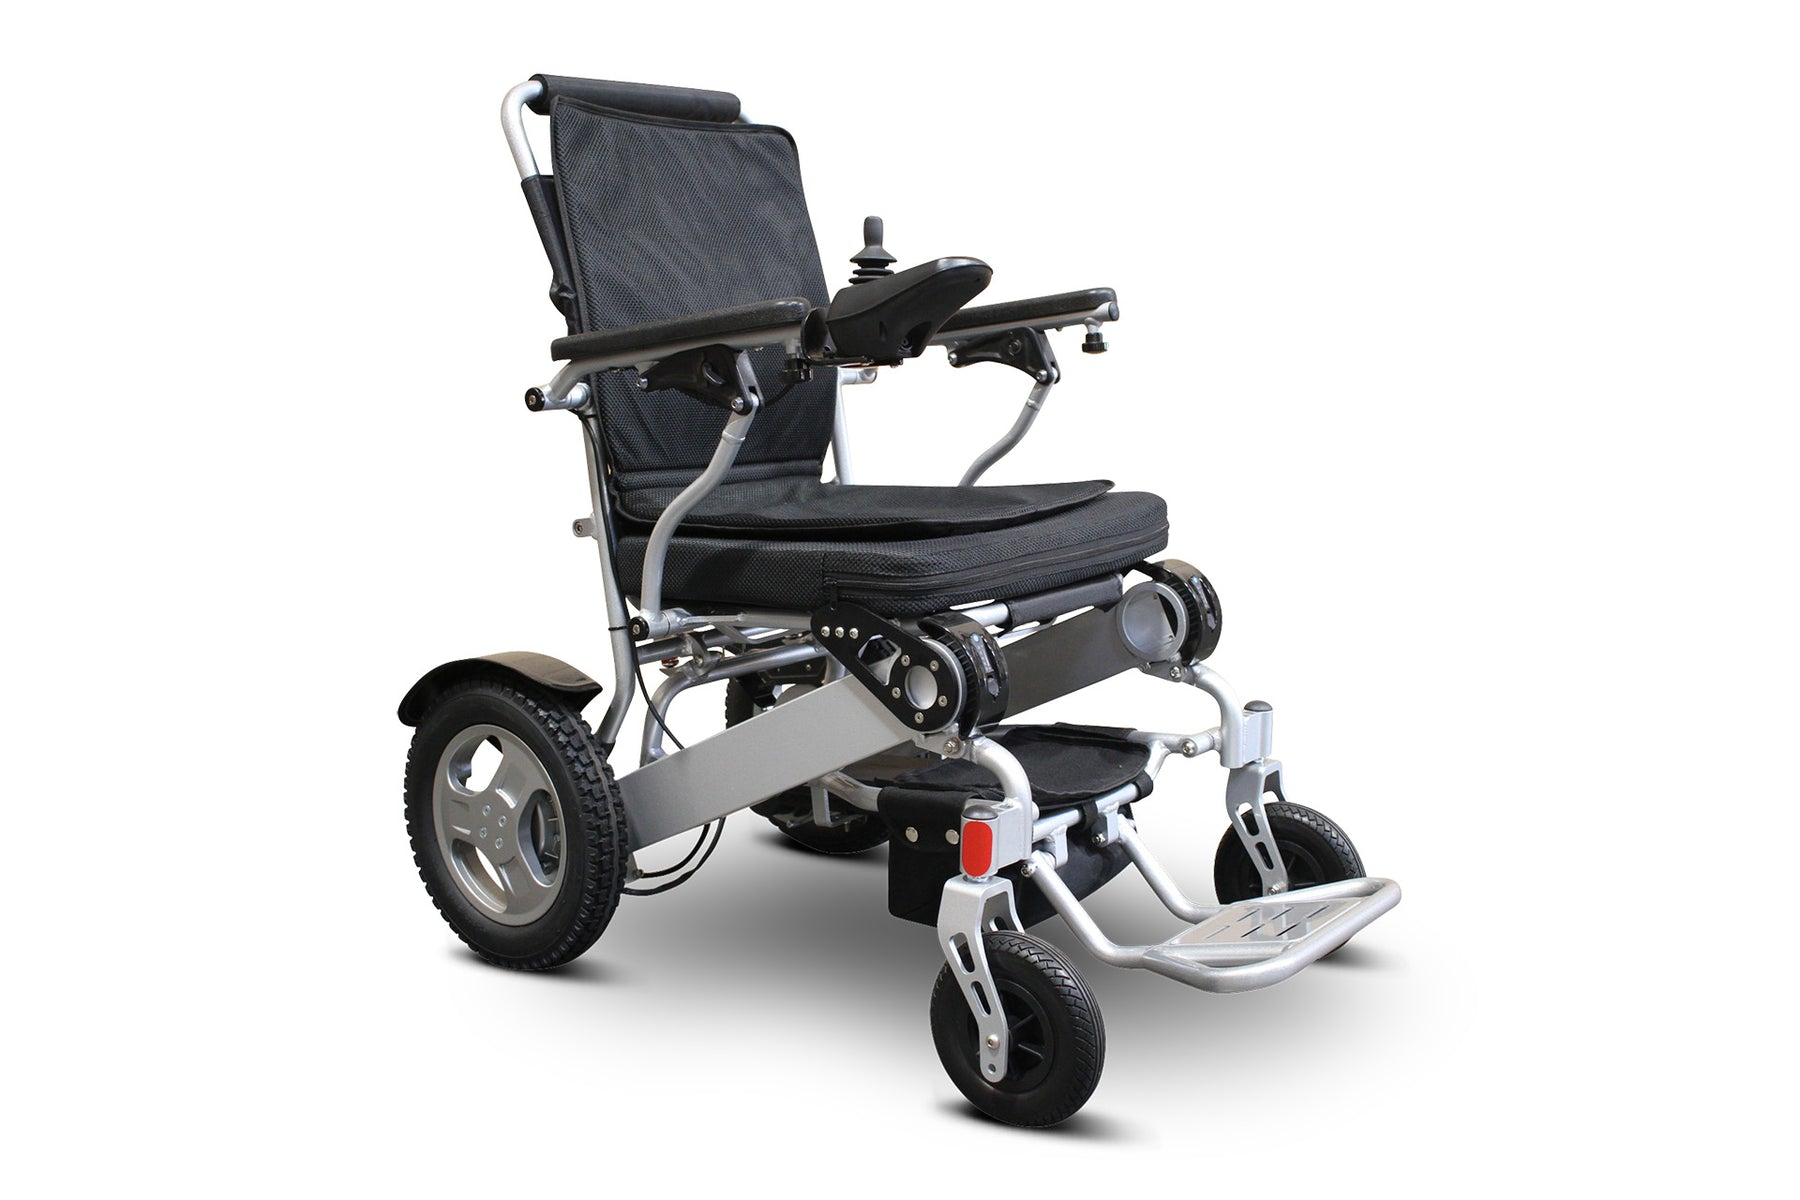 Ewheels EW M45 Folding Power Chair right angle view